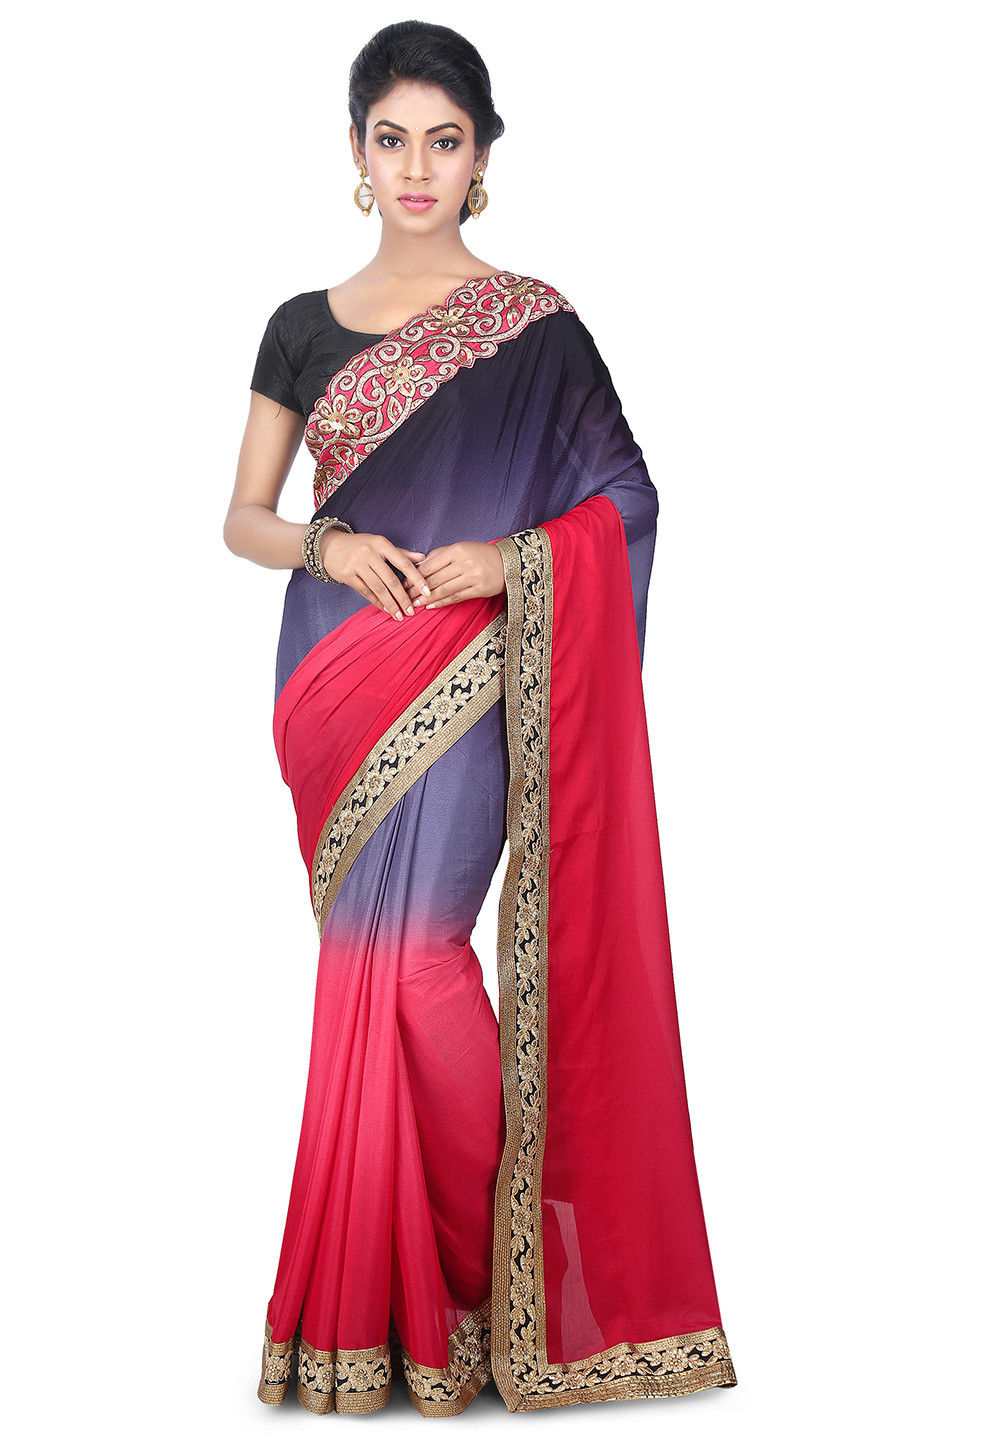 Plain Satin Chiffon Saree in Grey and Coral